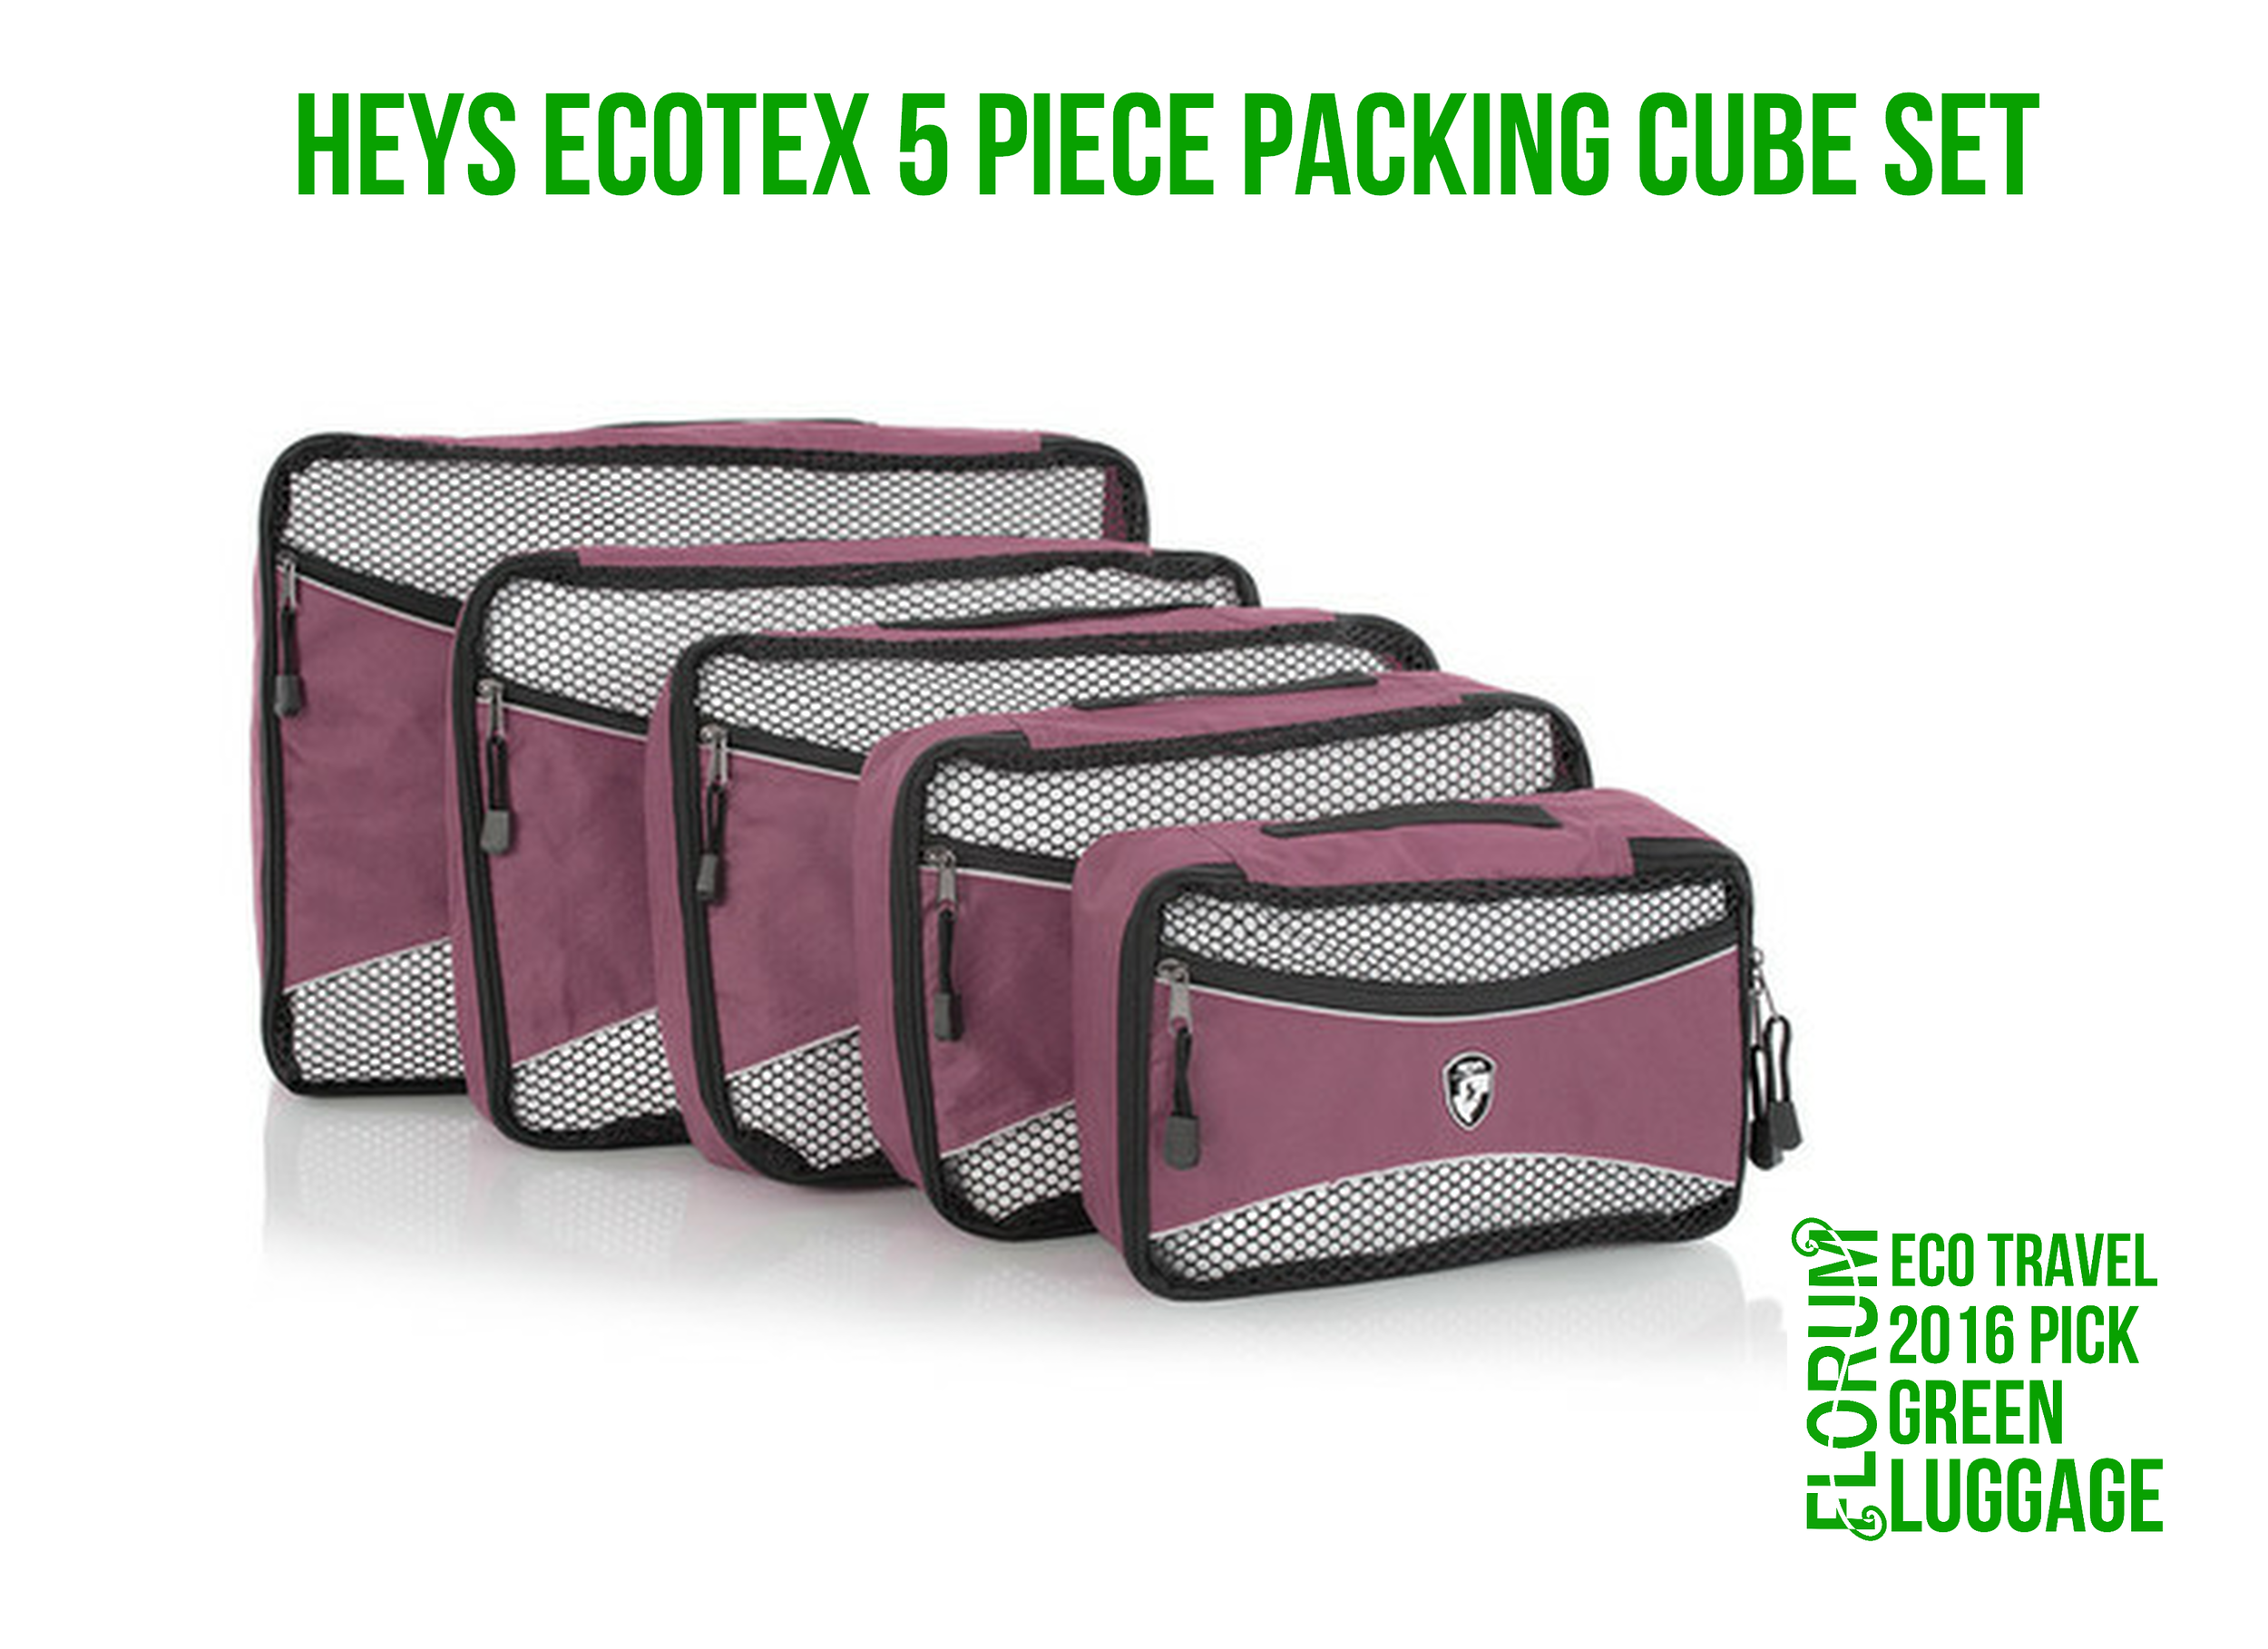 Florum Eco Travel 2016 Green Luggage Pick - Heys EcoTex 5 Piece Packing Cube Set - Noelle Lynne.png